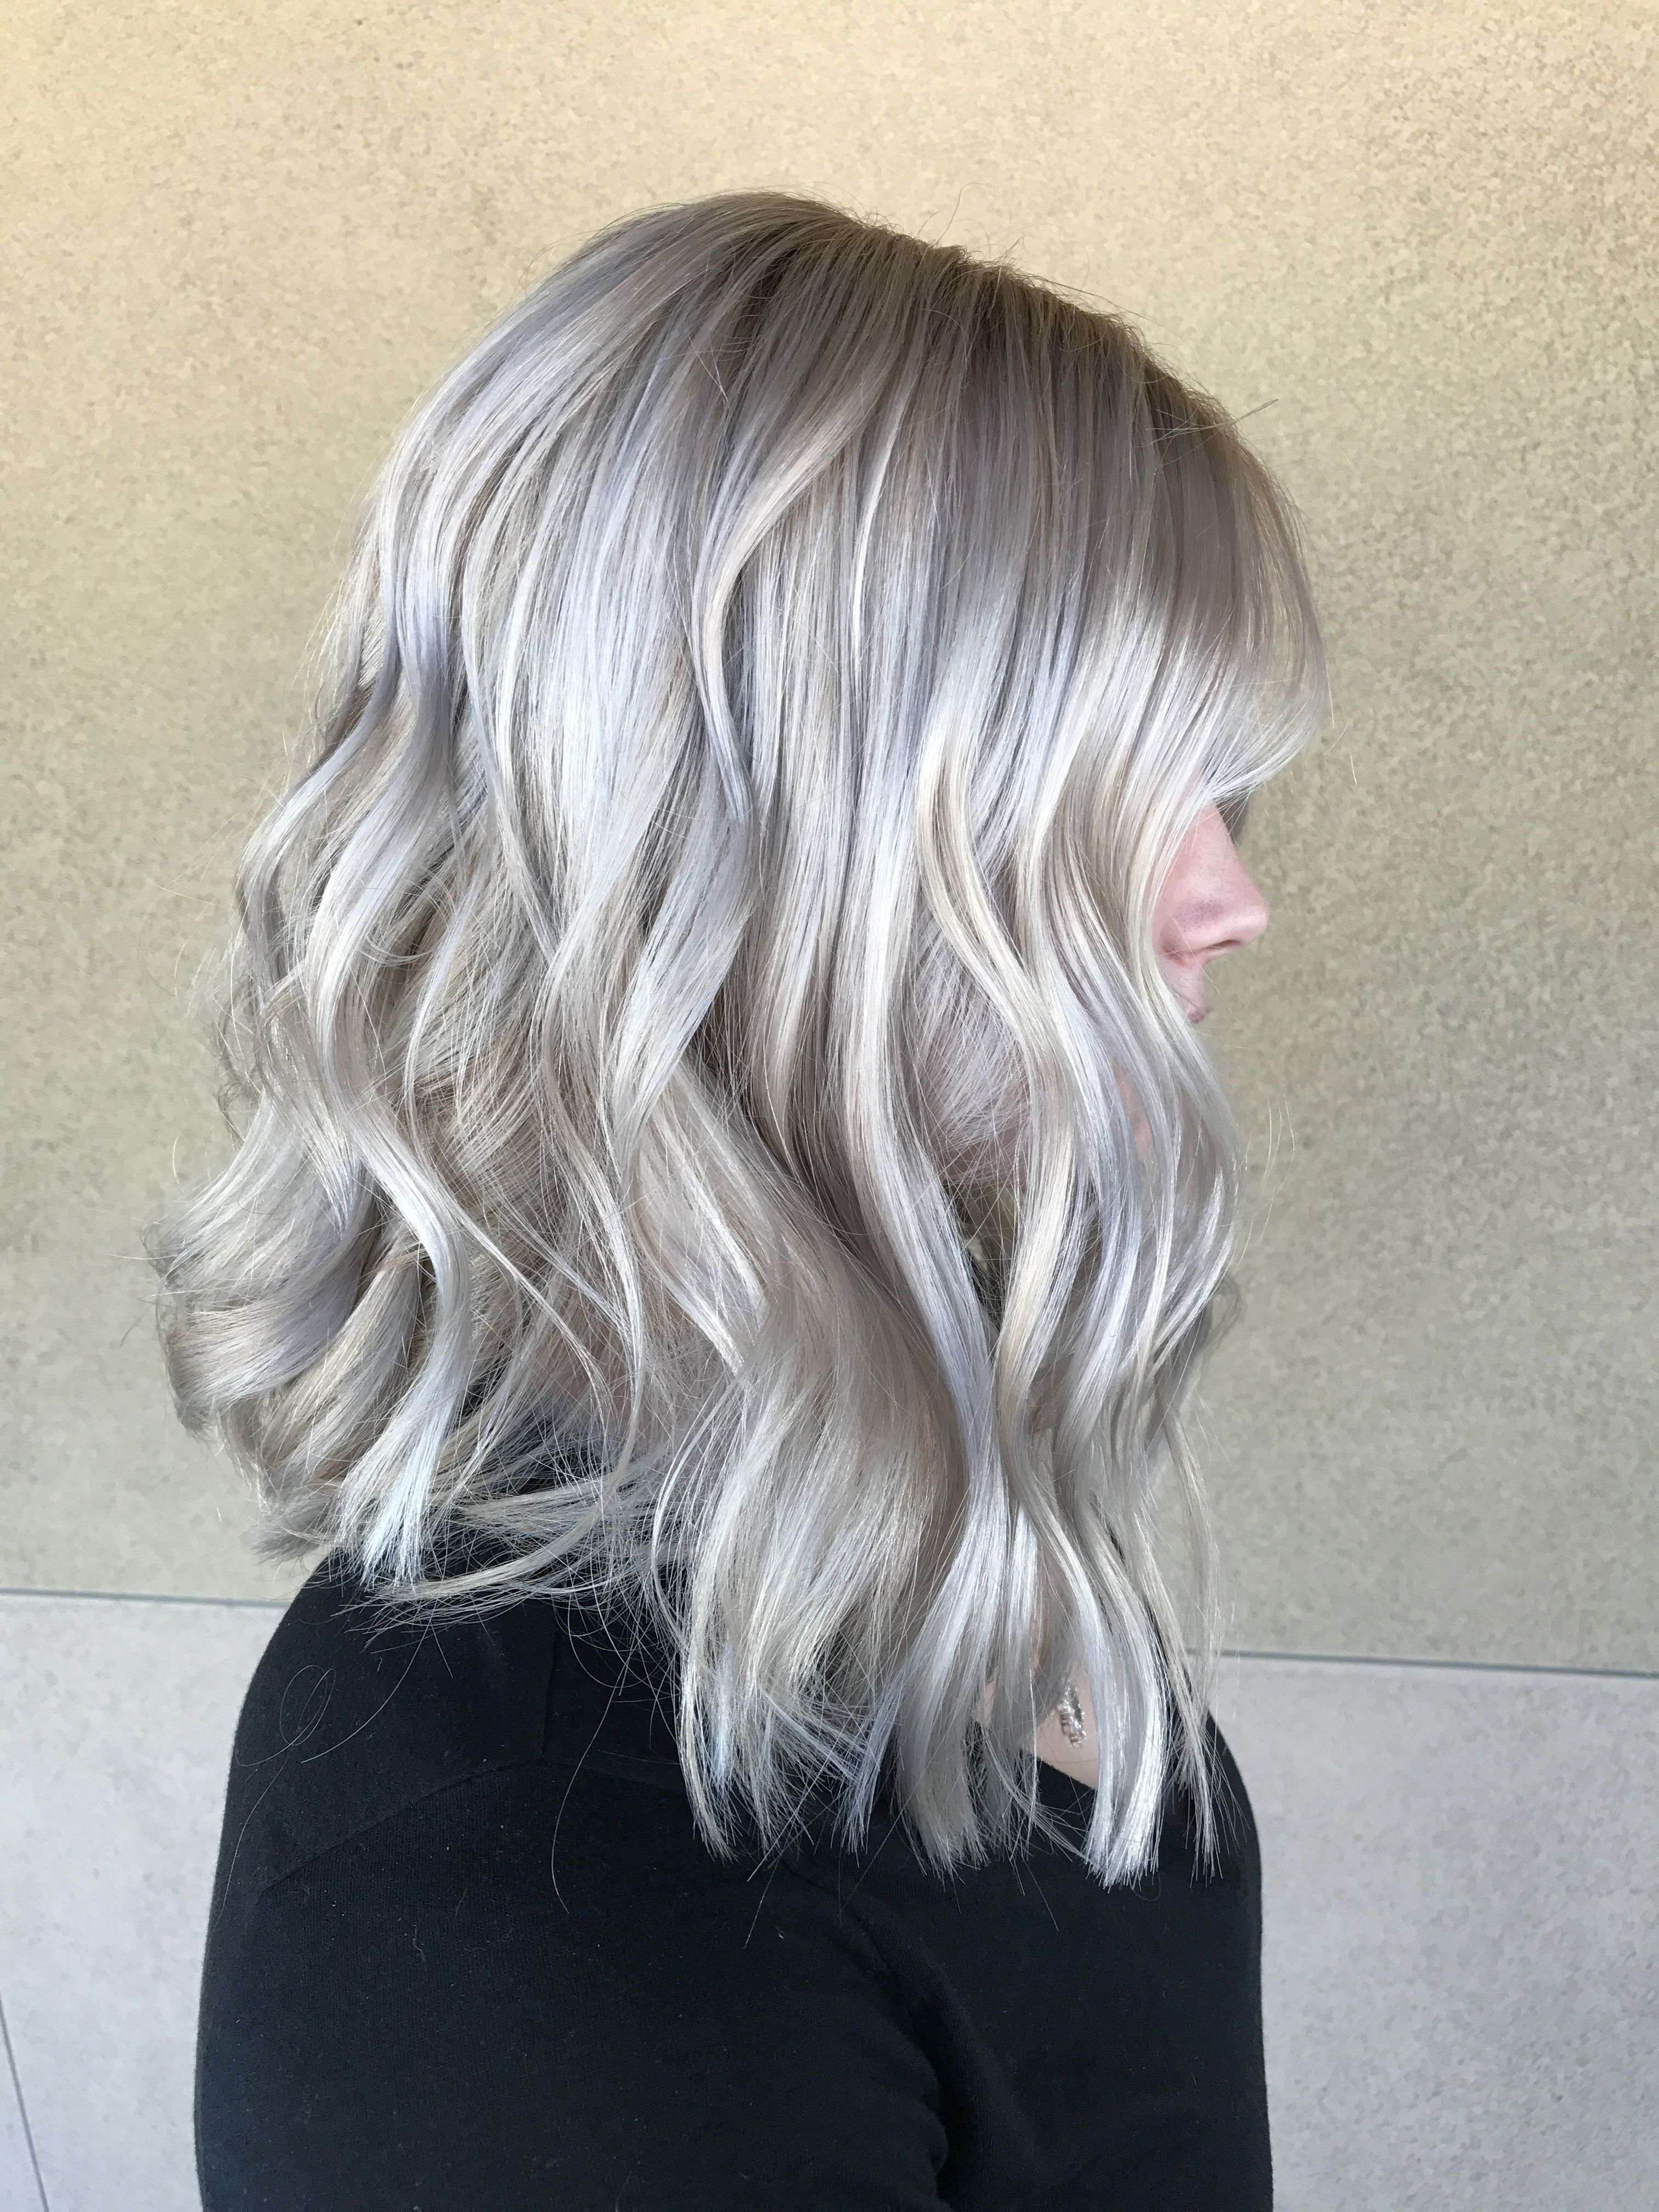 Icy Platinum Blonde Hair Short Hair Blonde Hair With Images